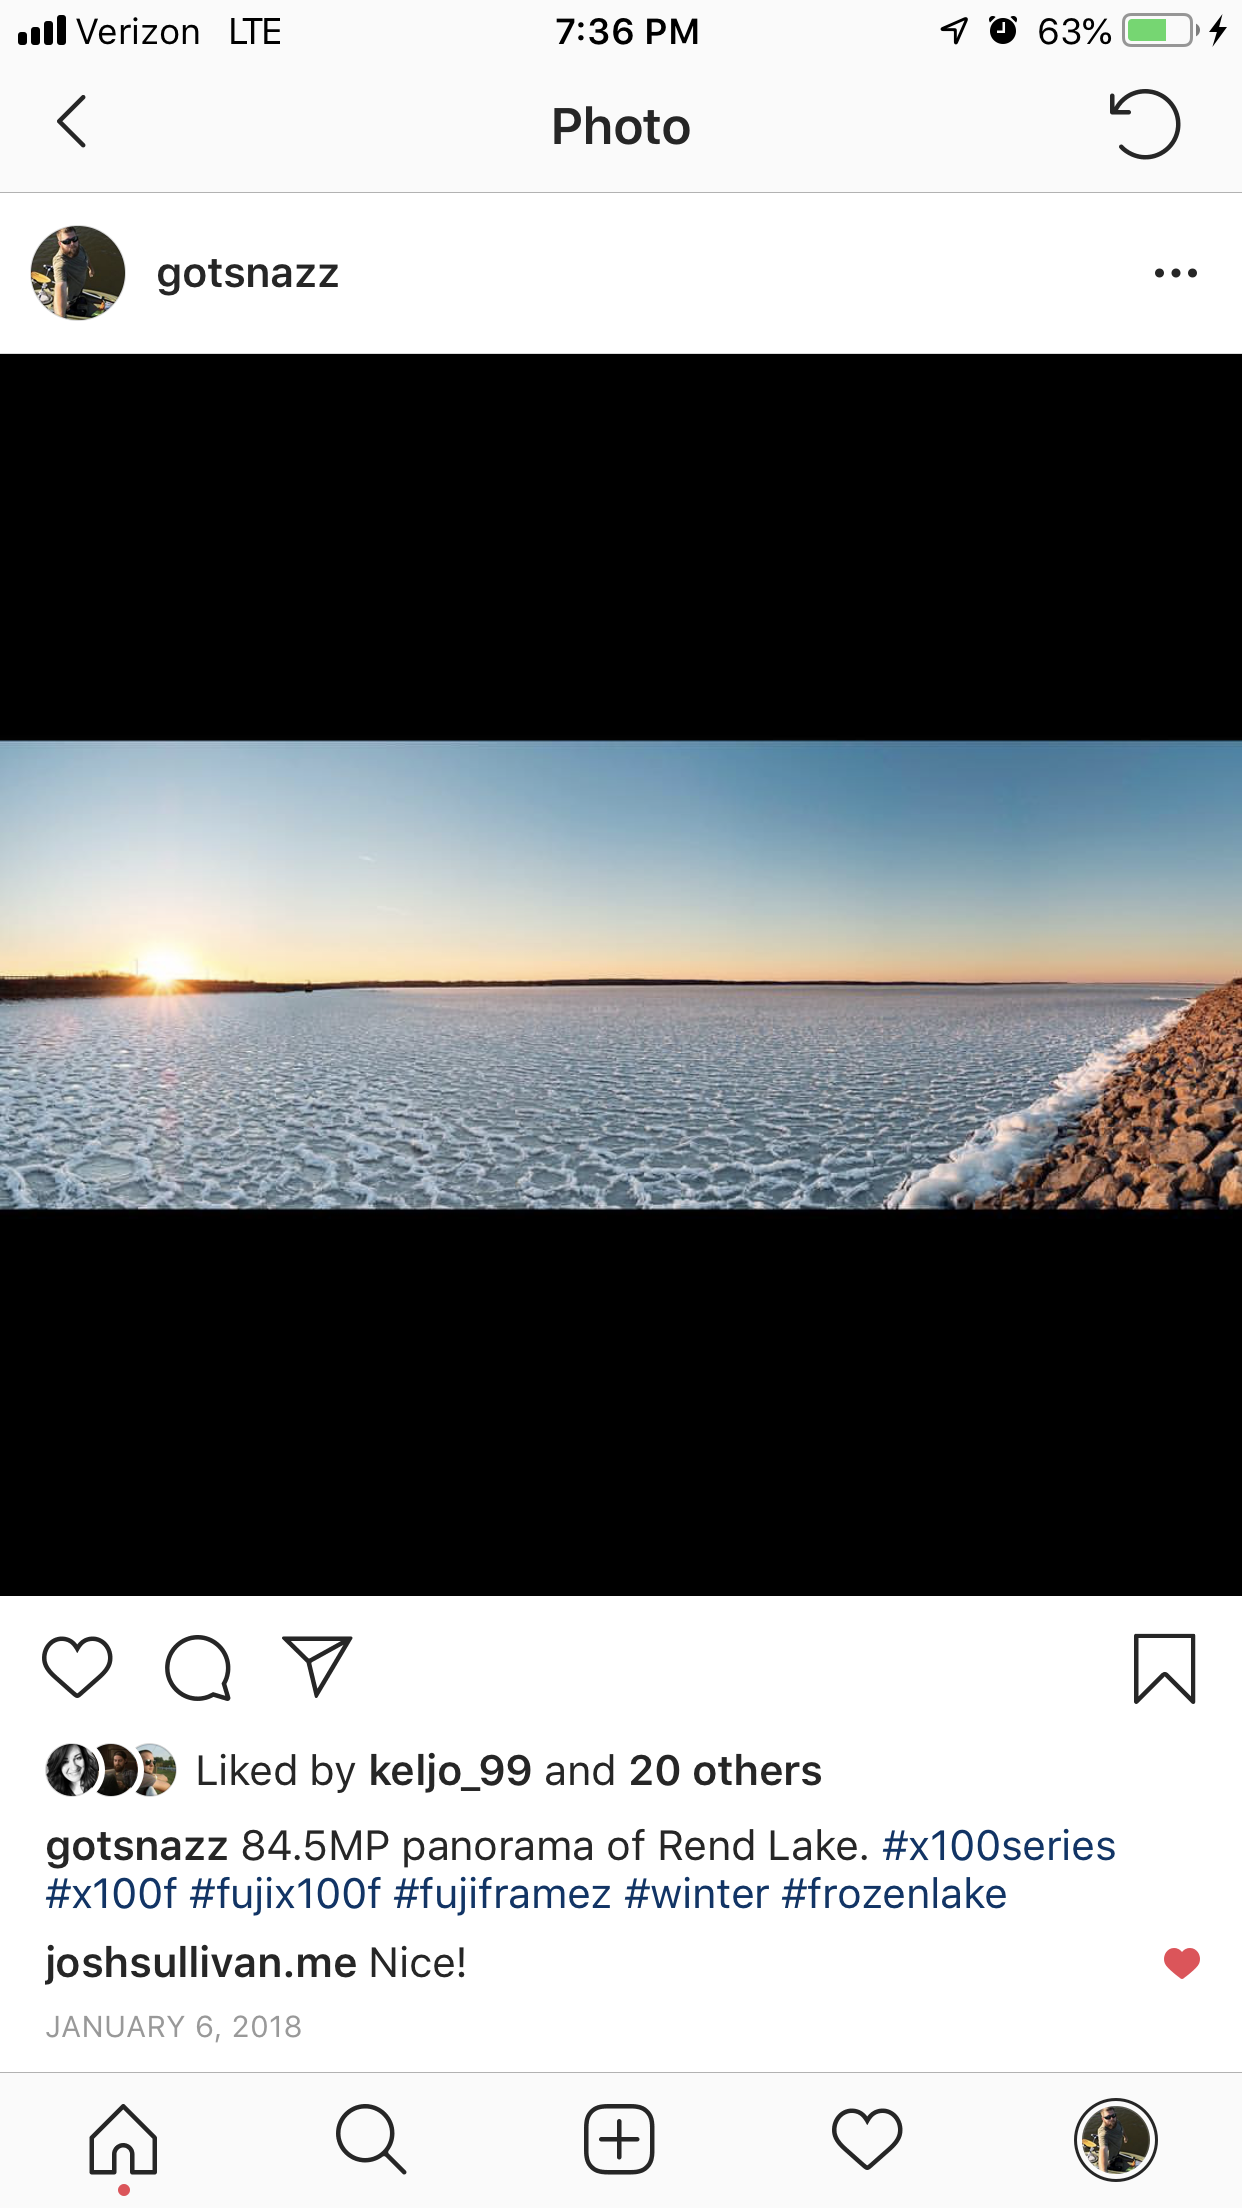 Panorama posted to Instagram. Notice how little of the screen area is being used by the actual photo.